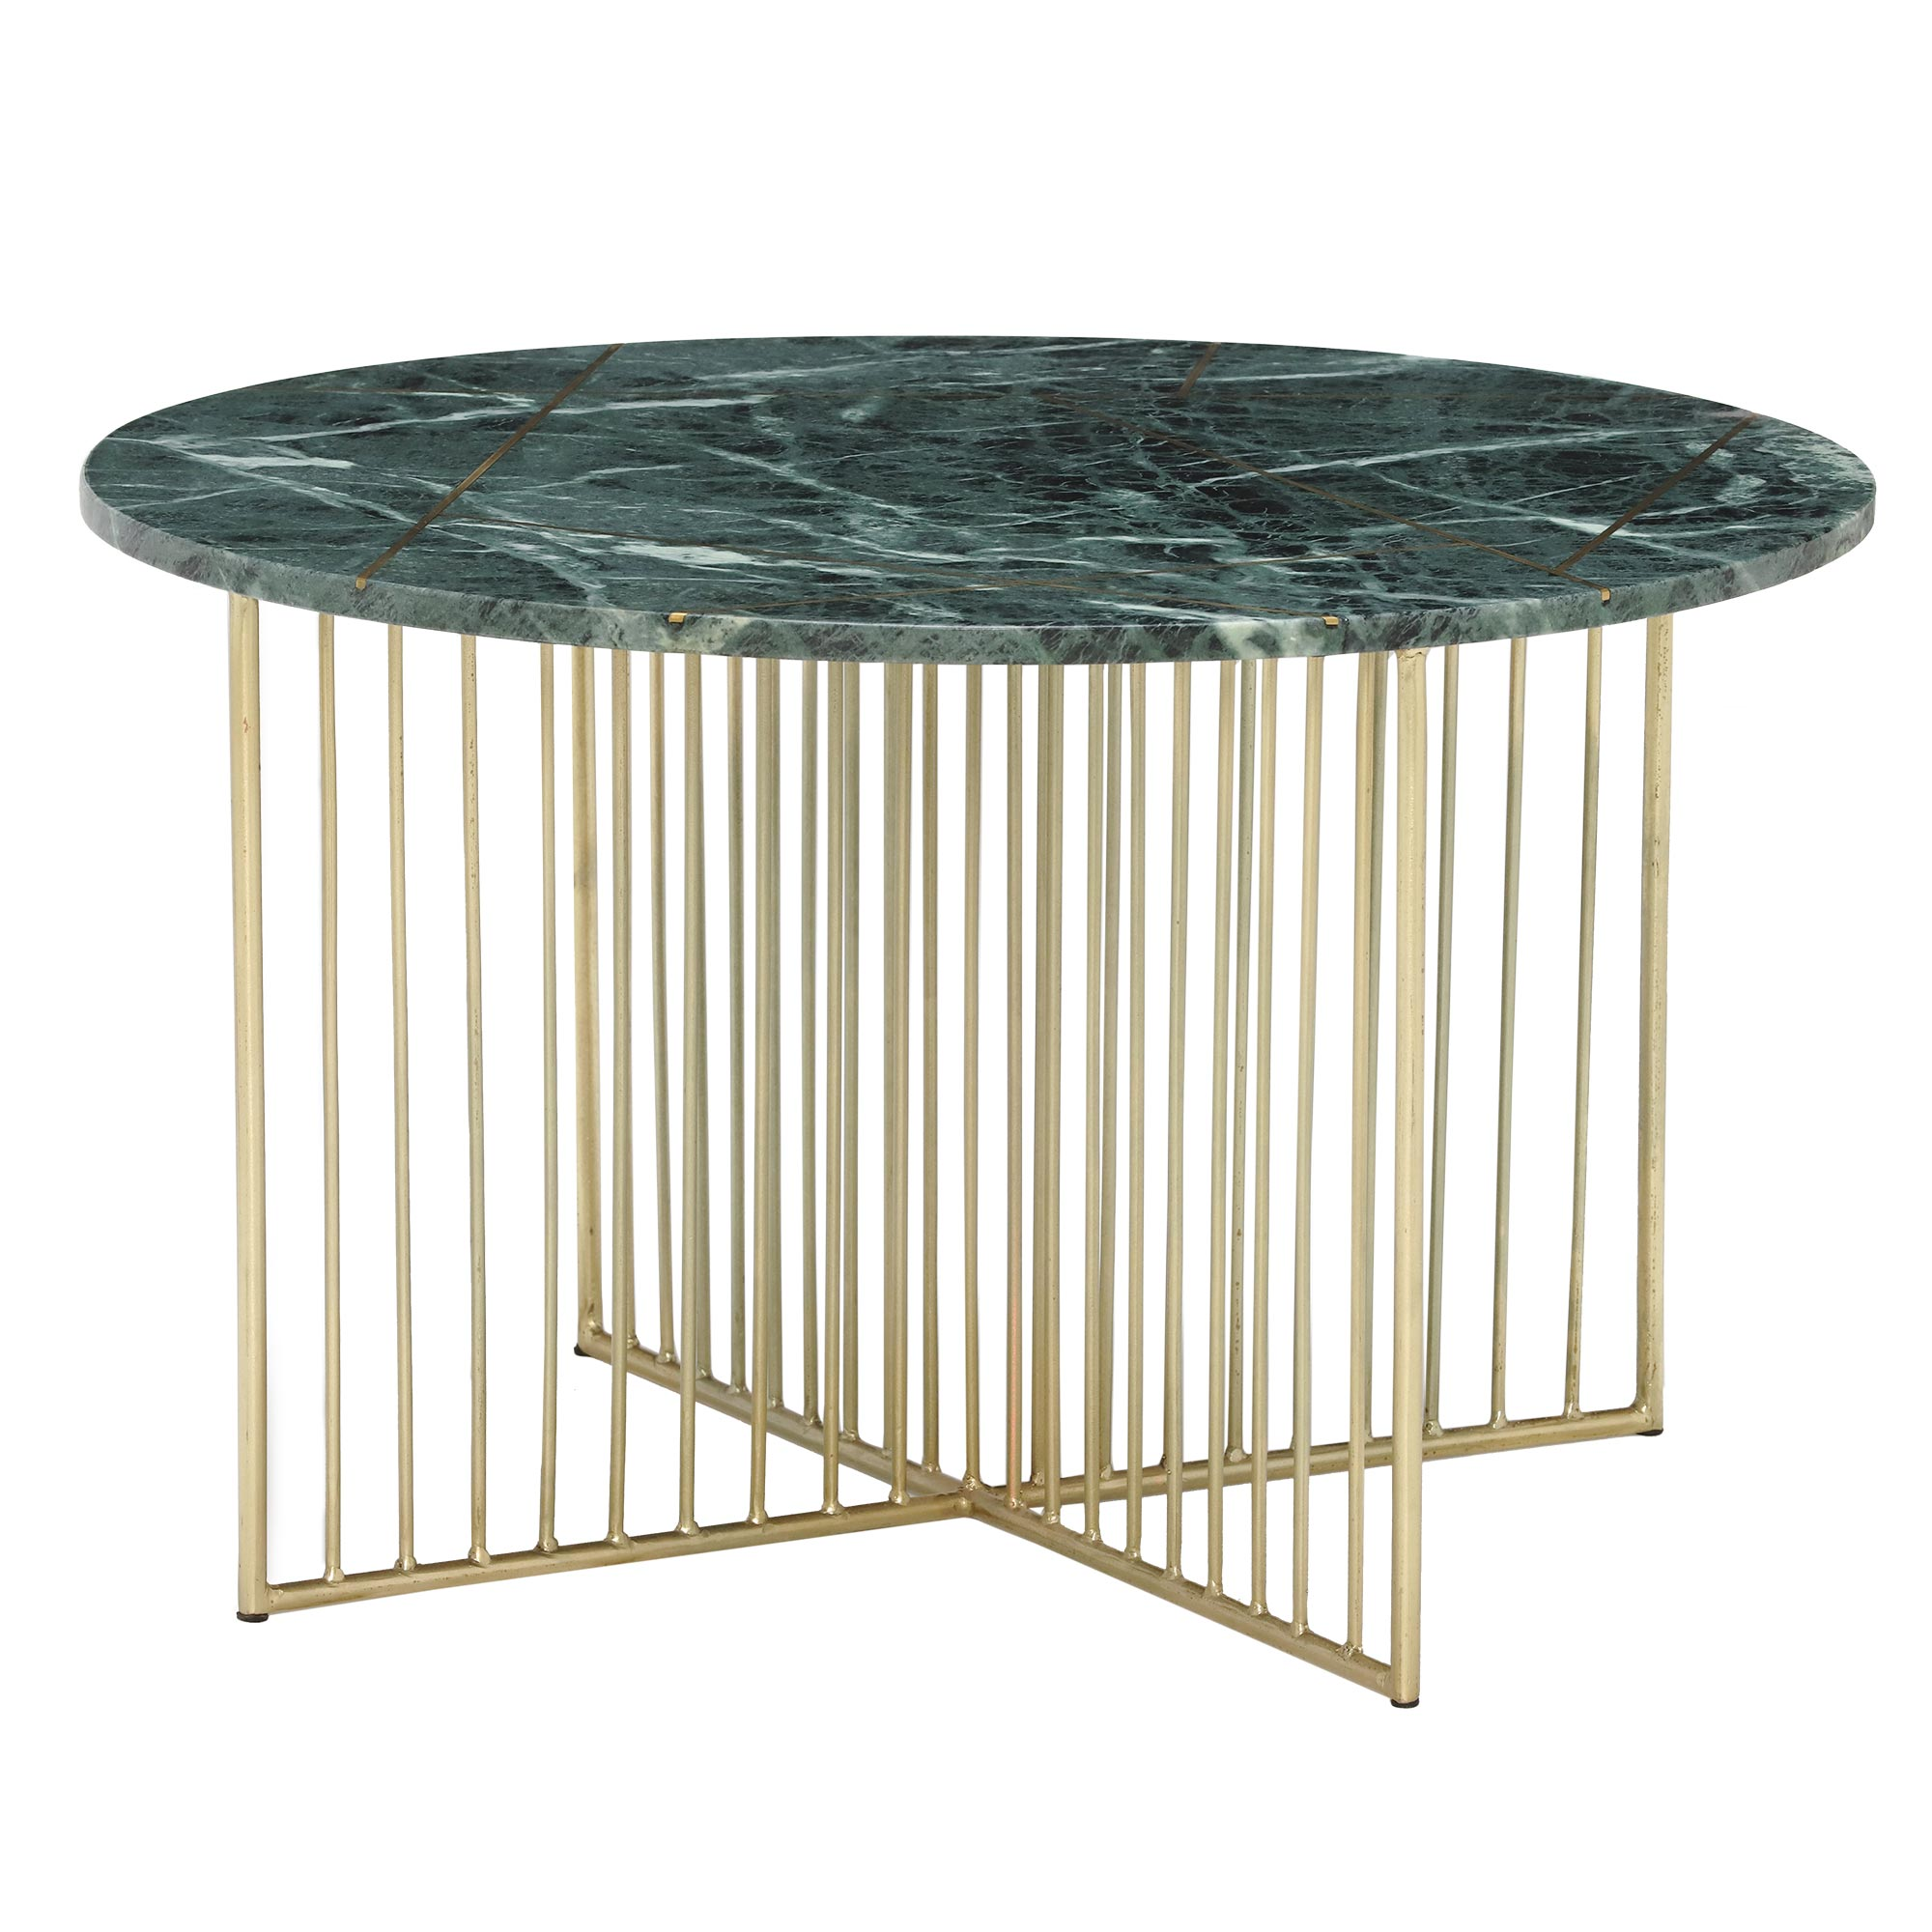 INSIGNIA COFFEE TABLE - FRONT DETAIL